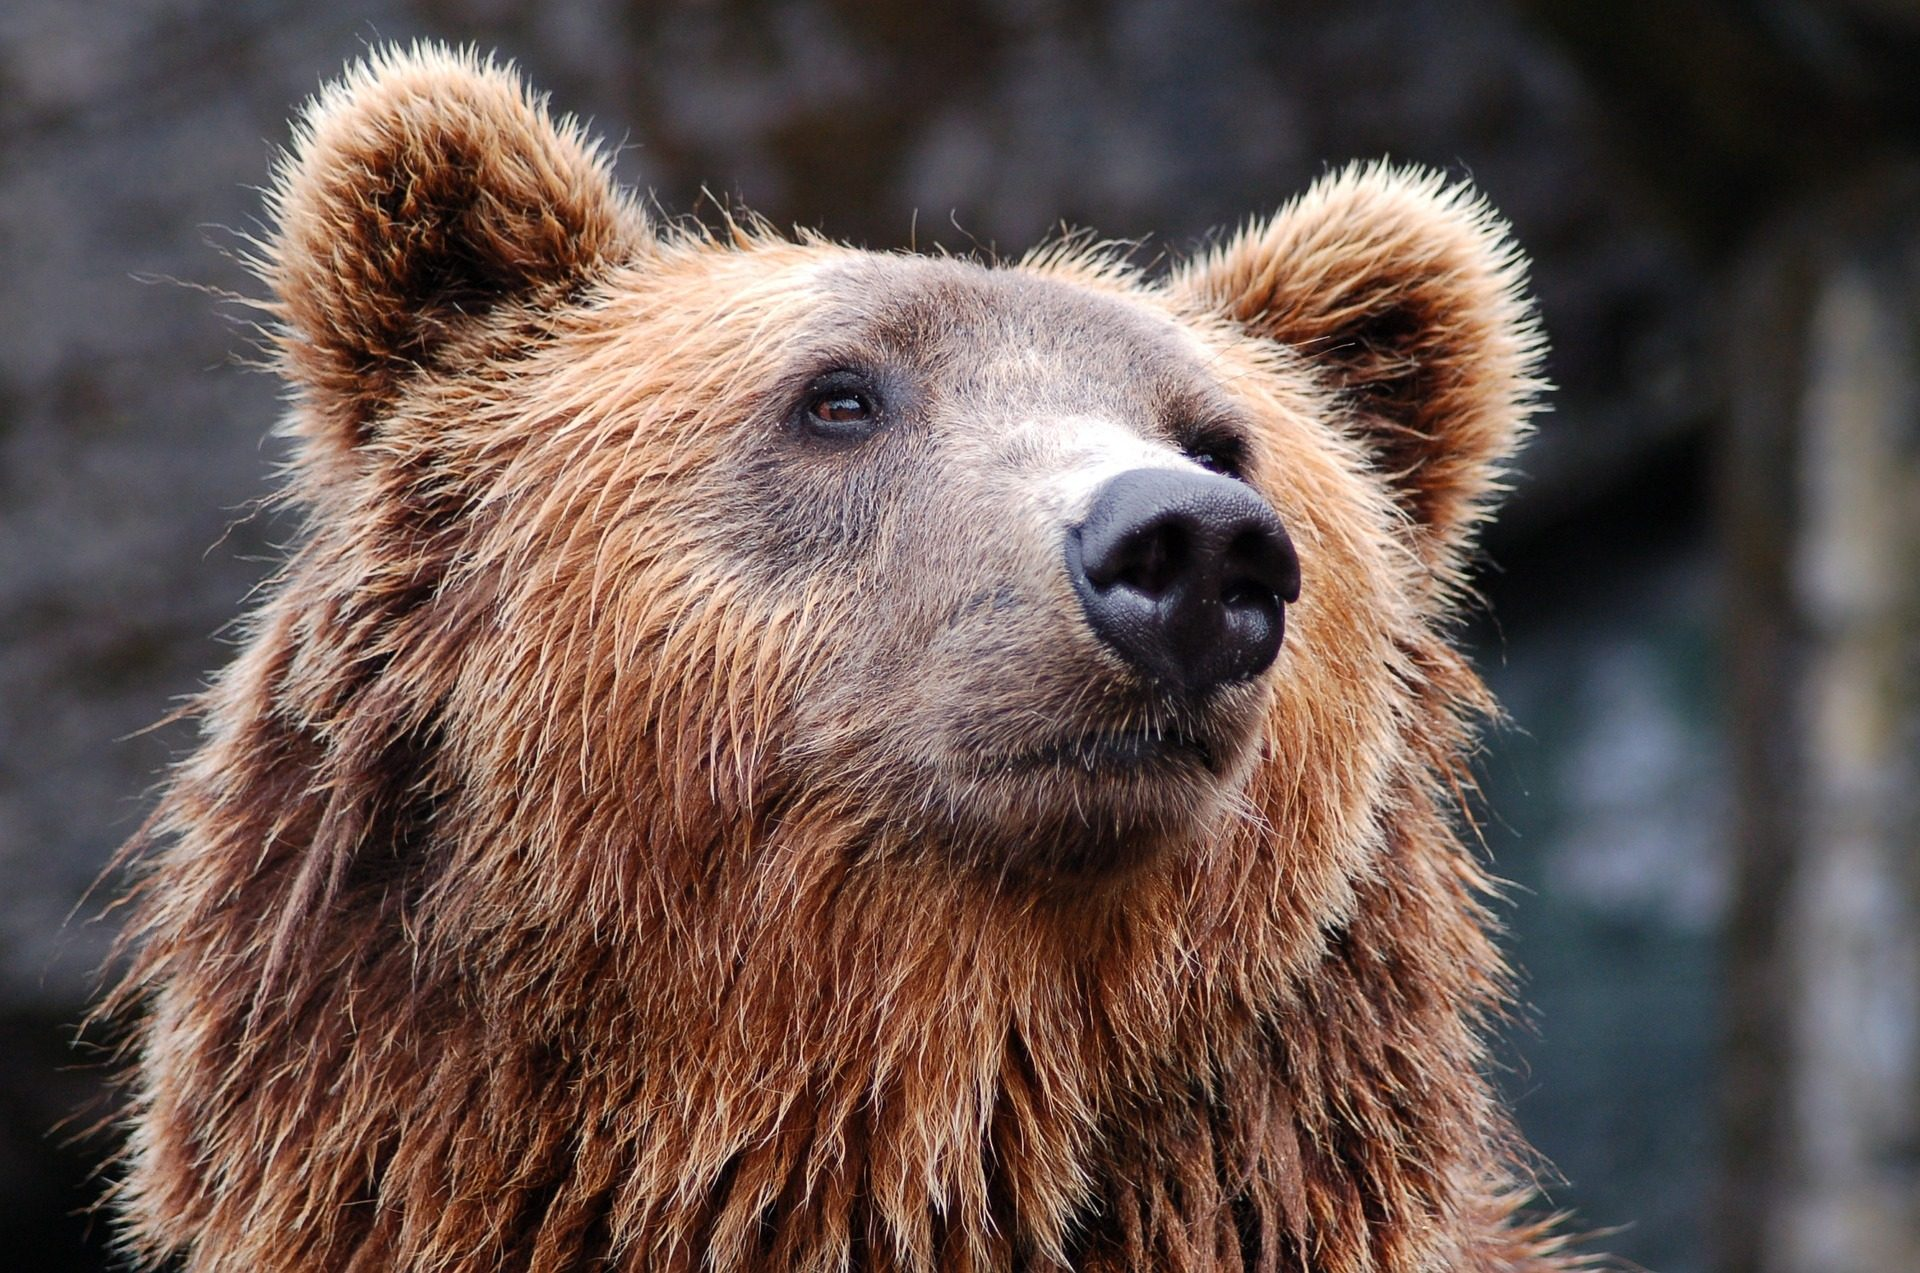 Bitcoin Price Still Heading for a Tumble as Bears Hold Dominance